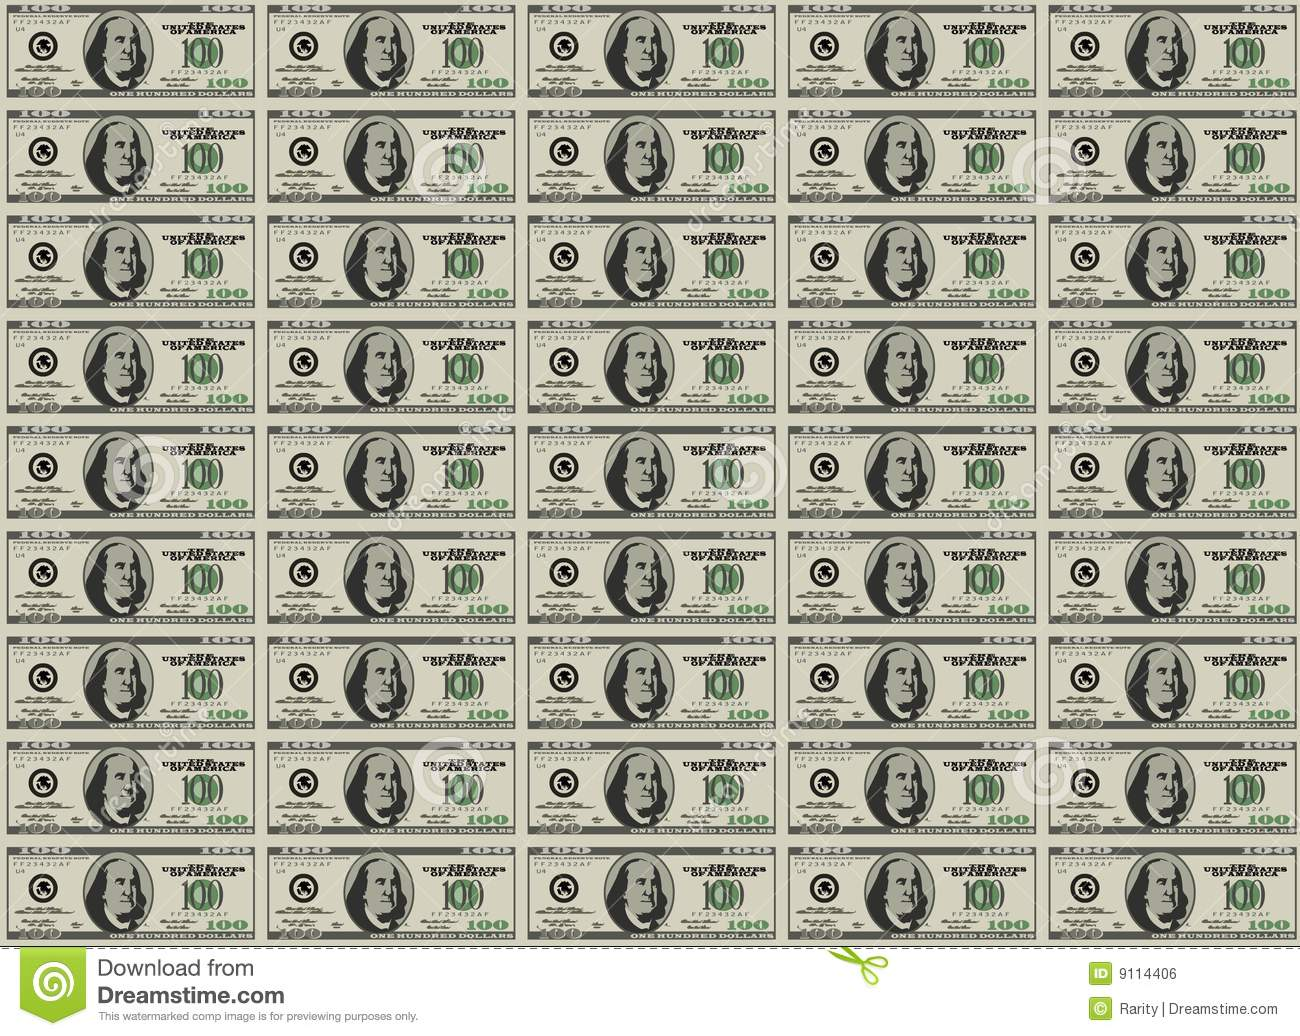 image regarding Fake Money Printables identify Economic sheet inventory vector. Example of thousands